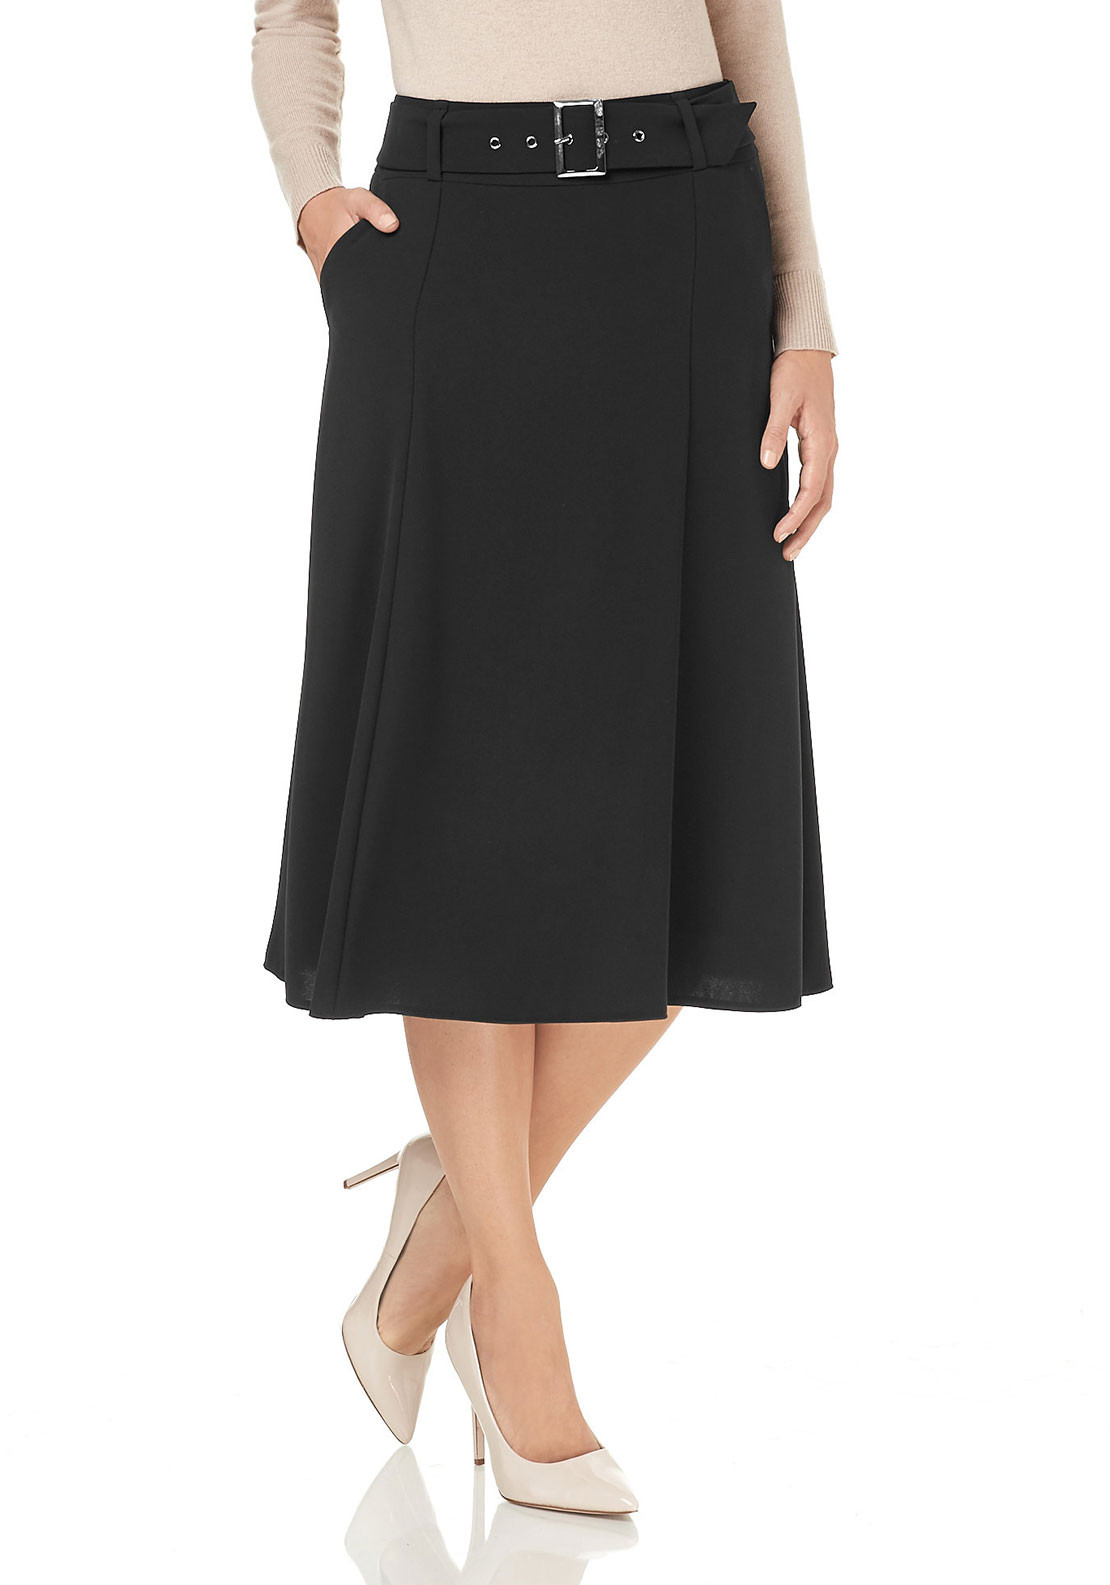 Gerry Weber A-Line Midi Skirt, Black